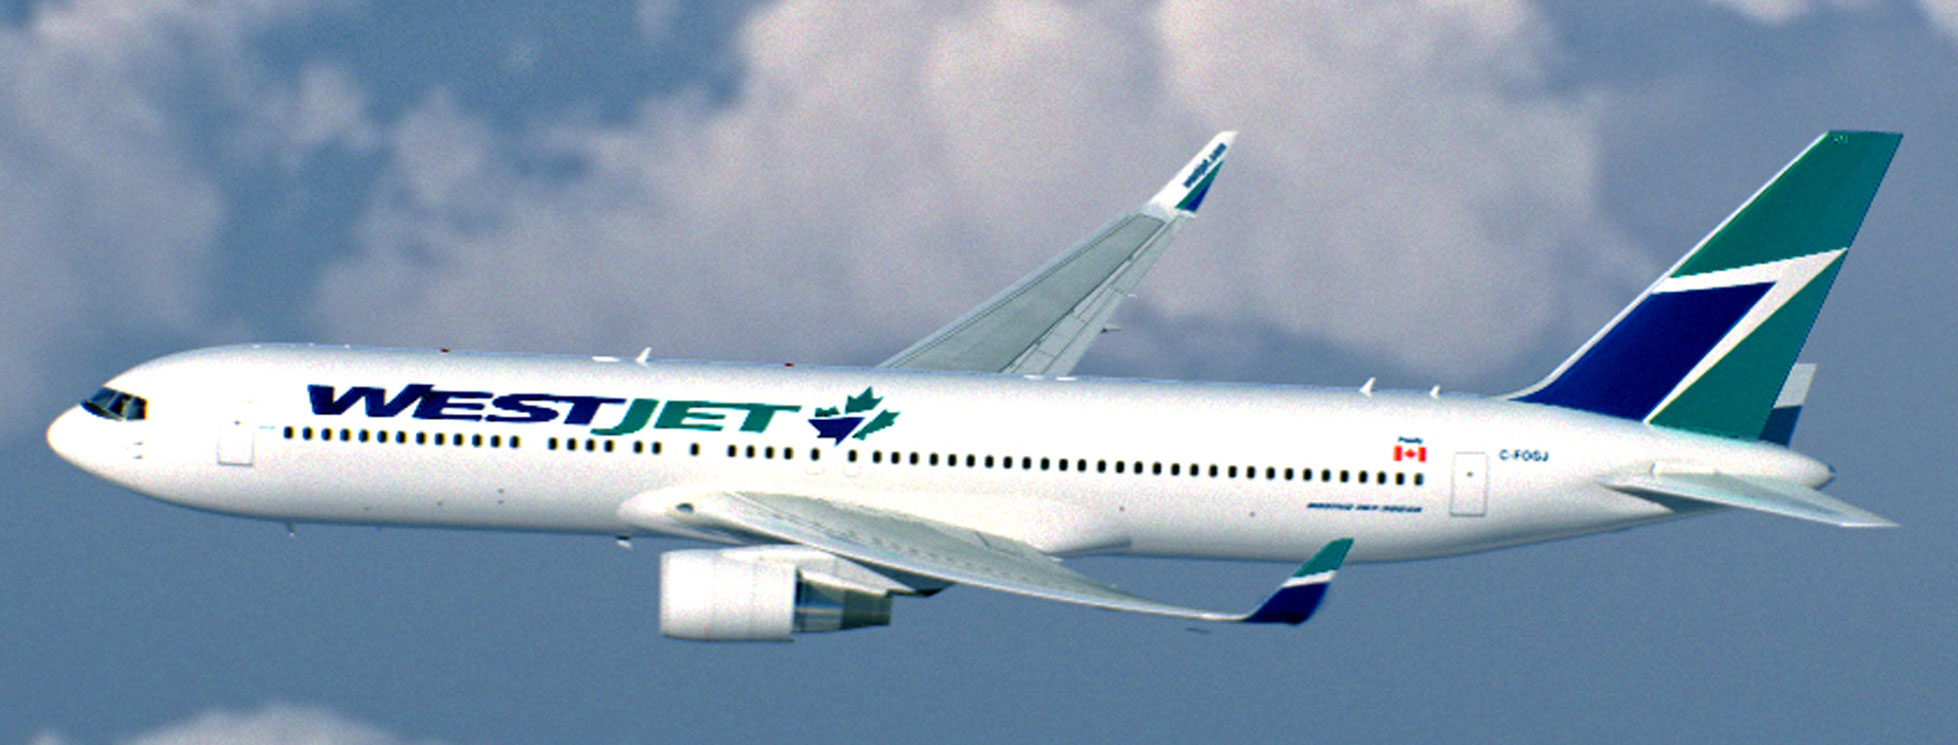 Local Chambers of Commerce excited for WestJet launch